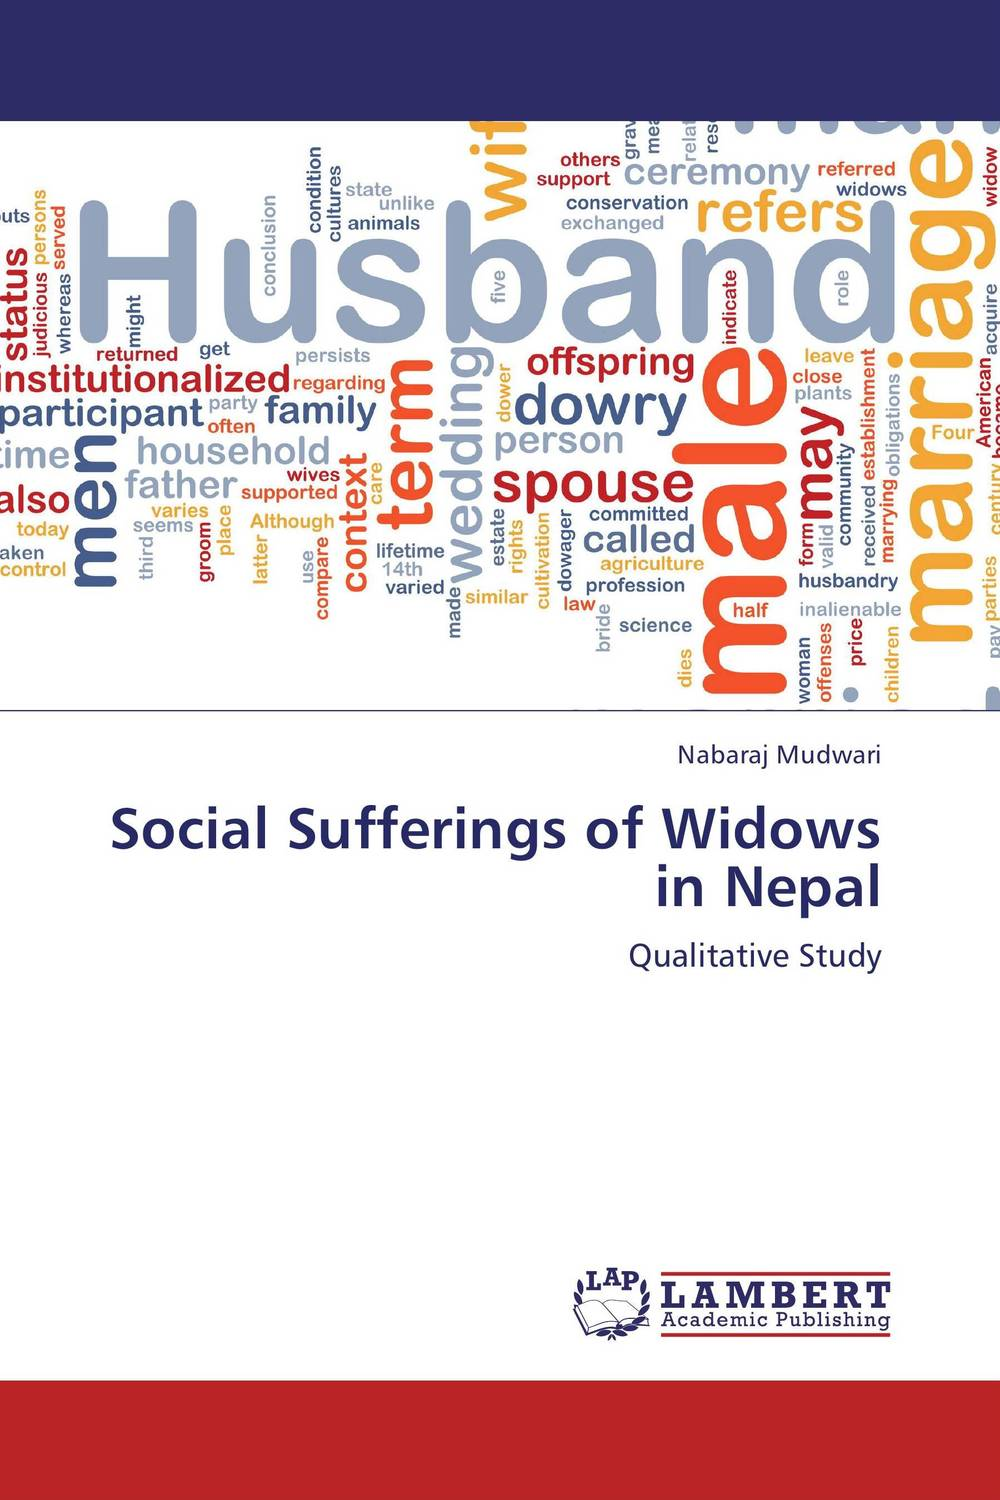 Social Sufferings of Widows in Nepal the viabilities of musyarakah as social protection mechanism